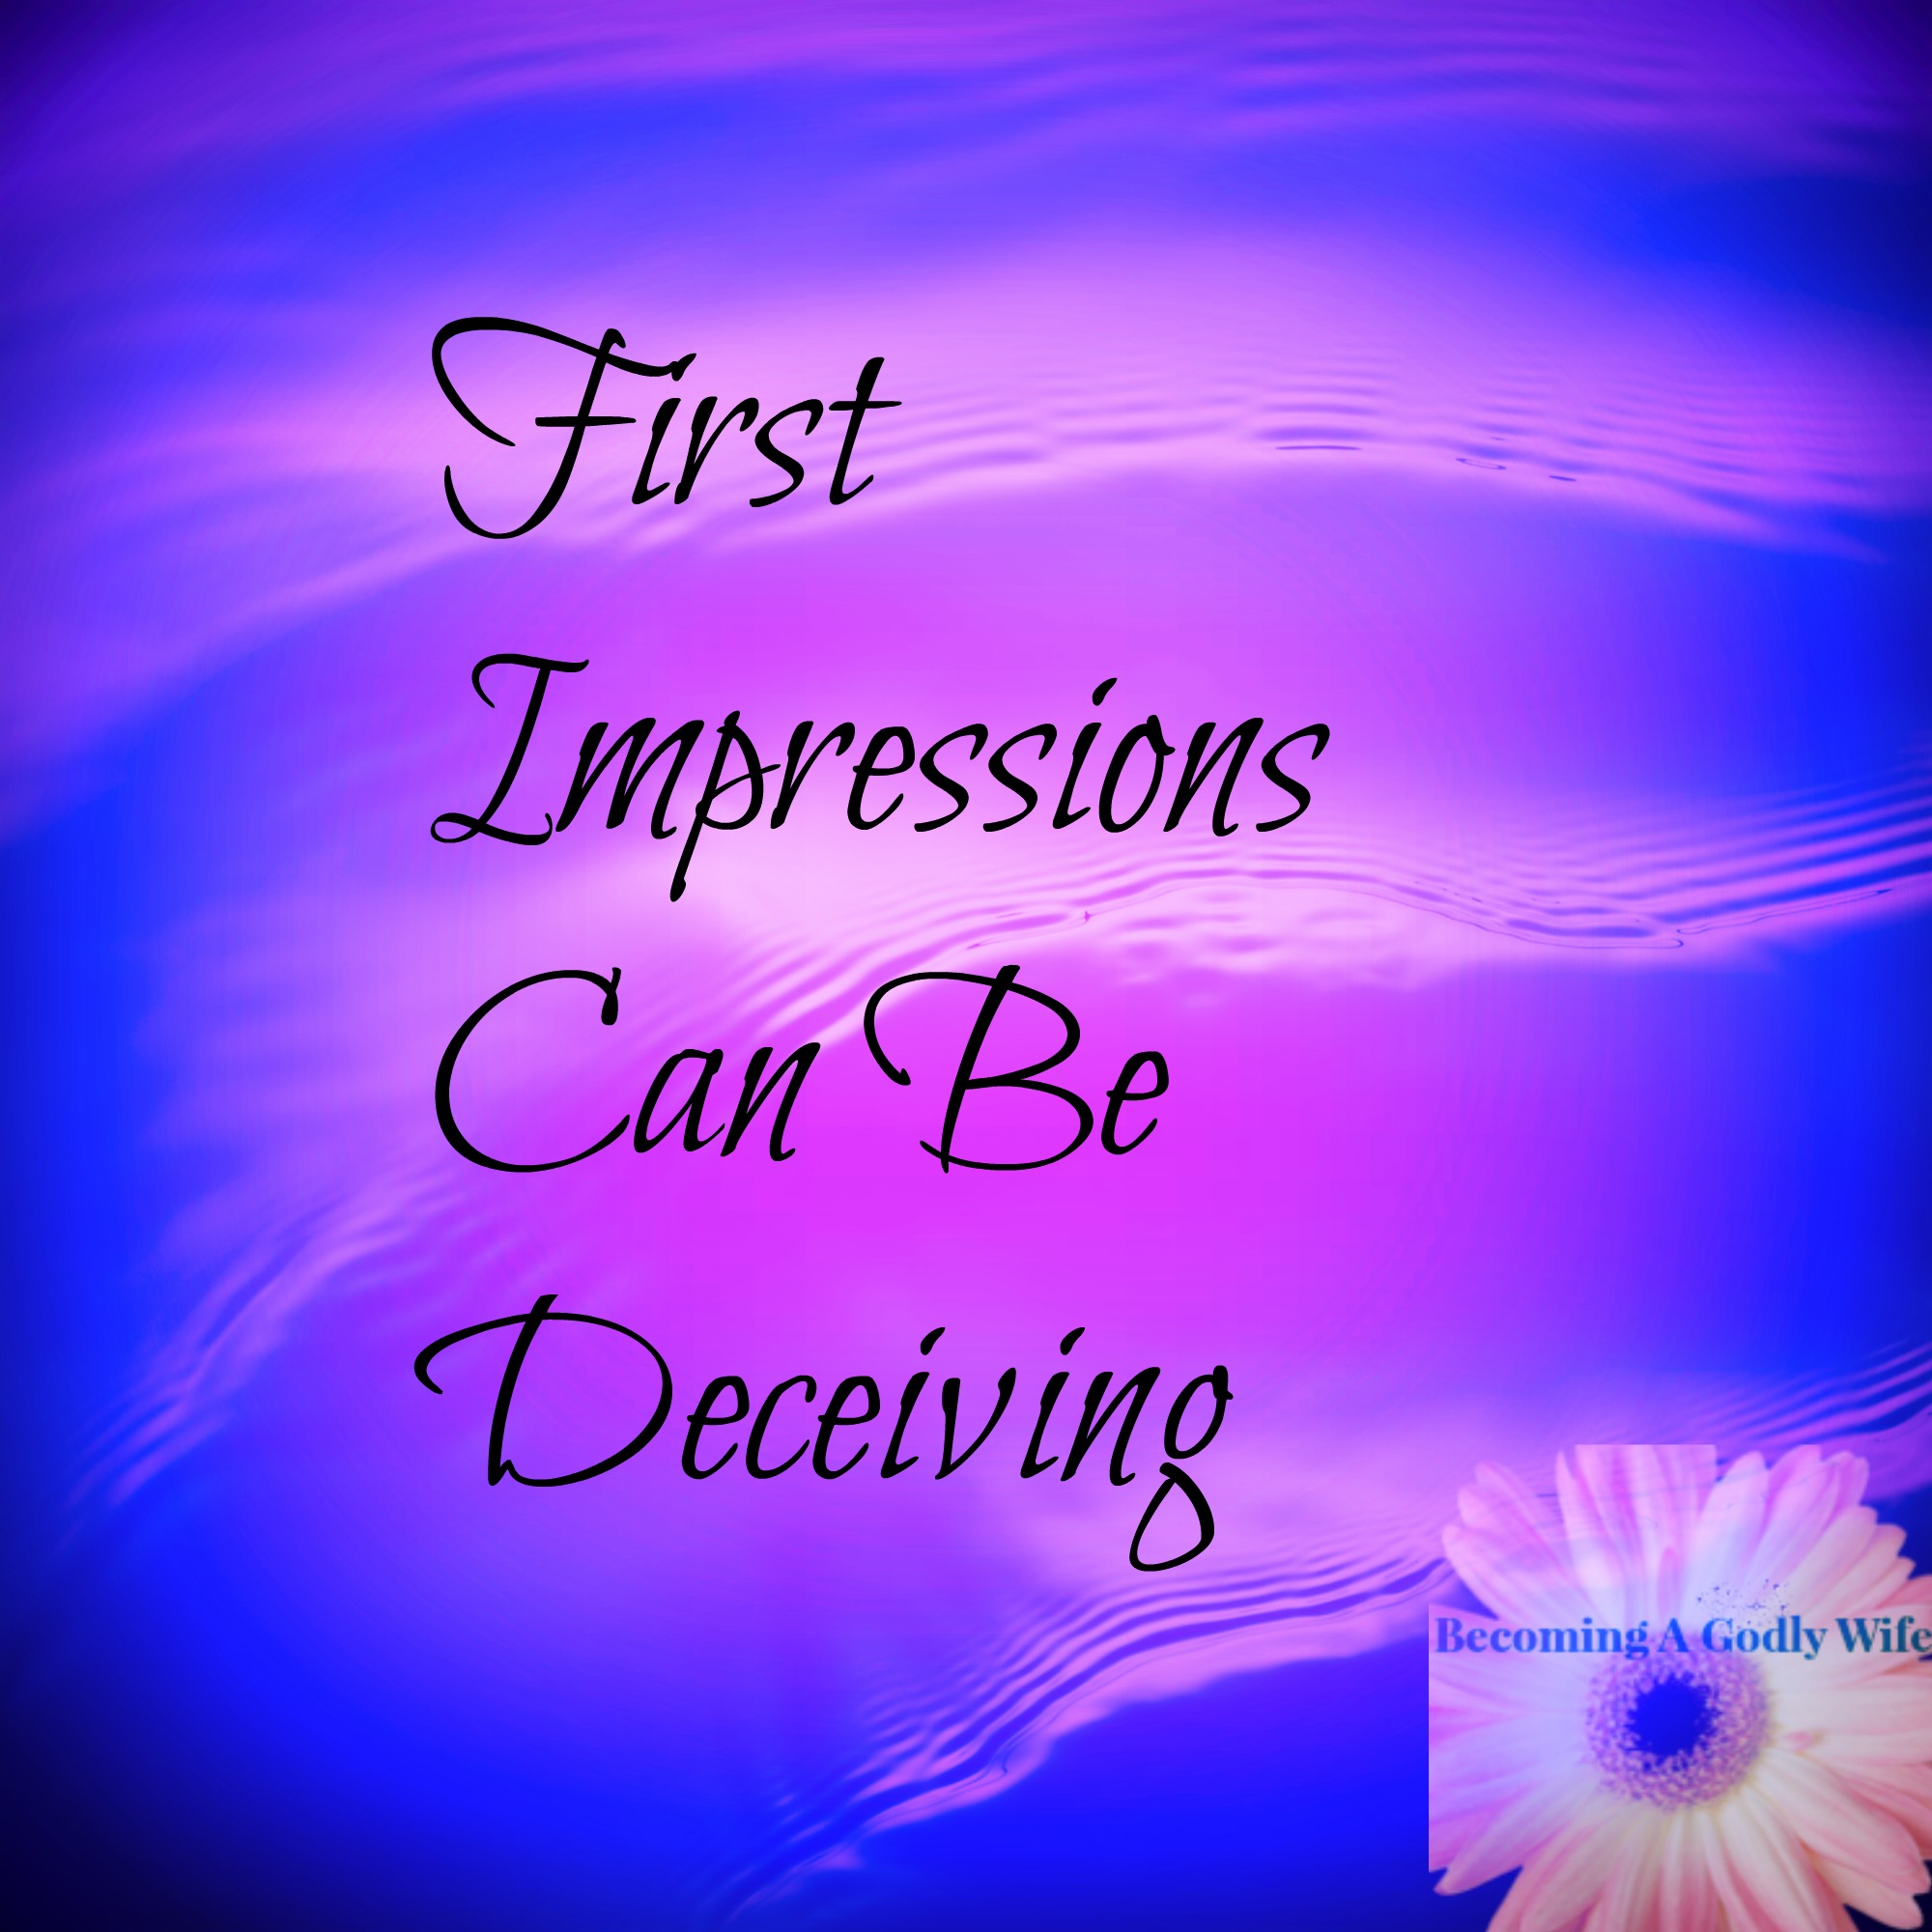 First Impressions Can Be Deceiving